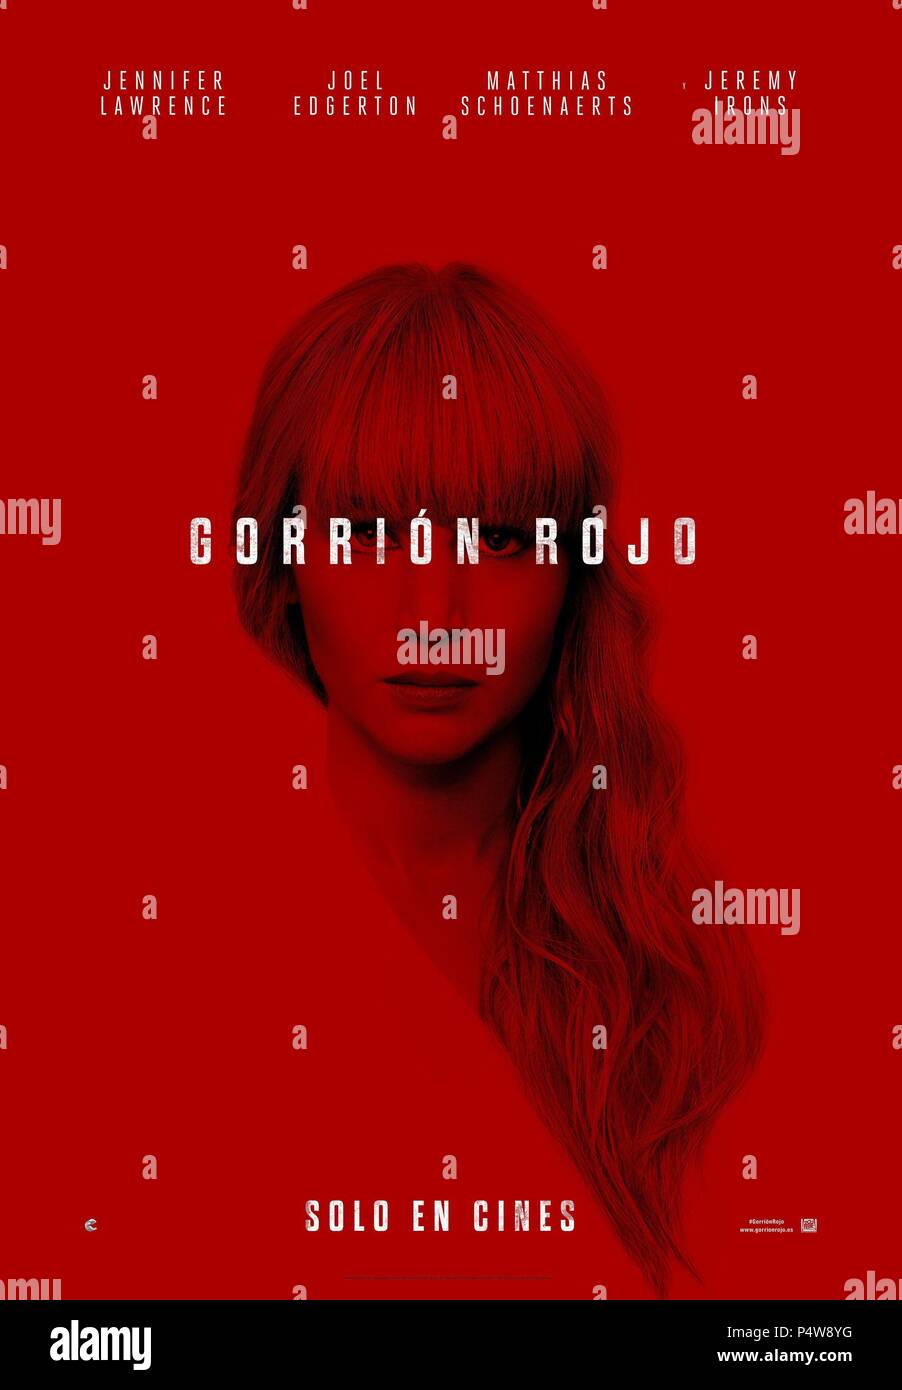 RED SPARROW Movie PHOTO Print POSTER Textless Film Art Jennifer Lawrence 002